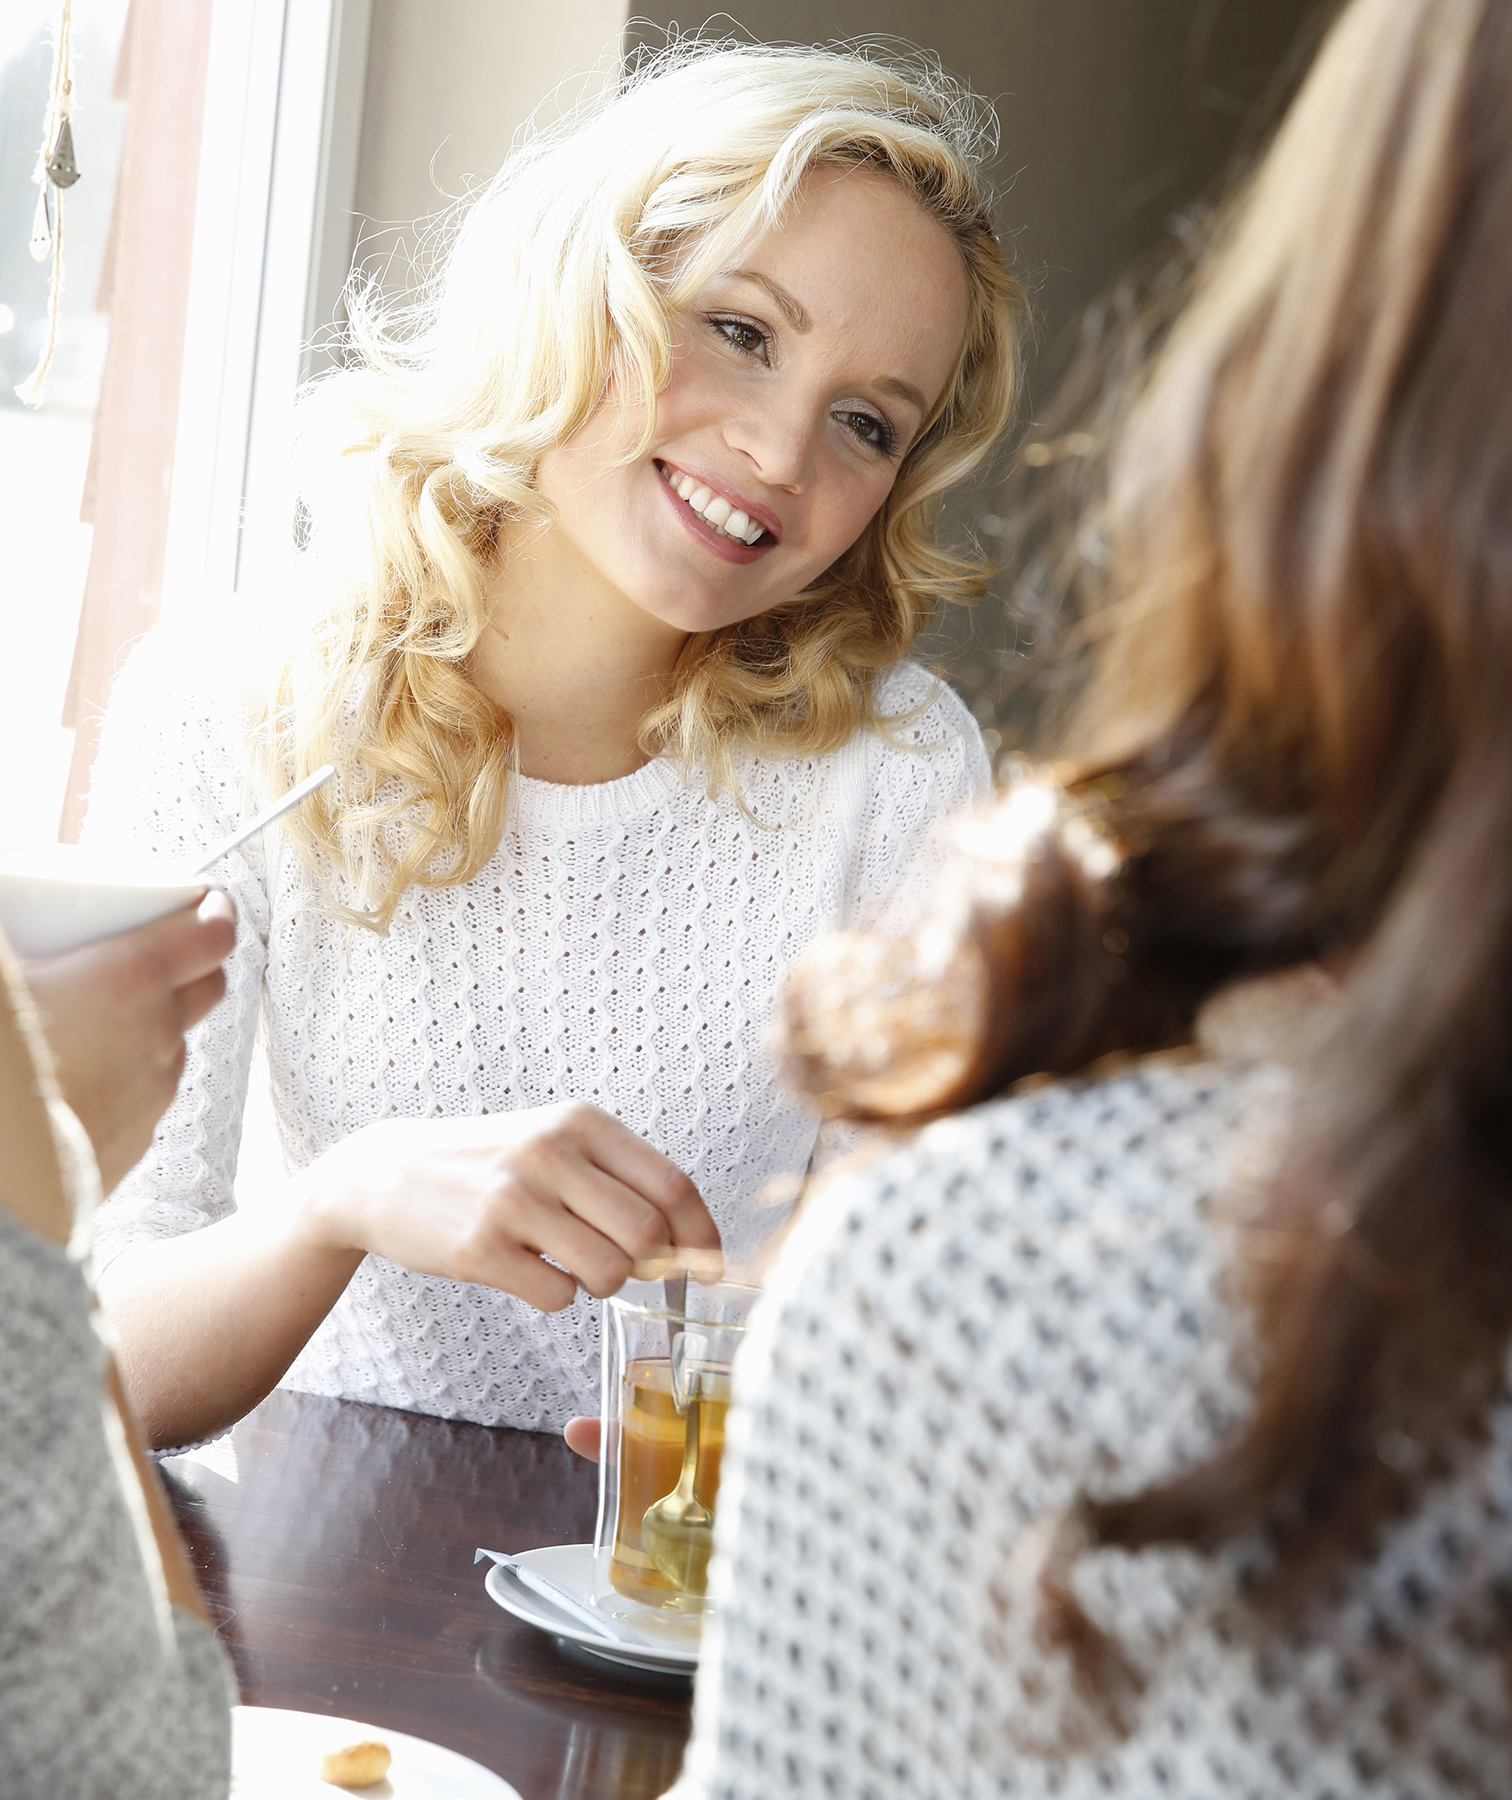 Three women chatting in cafe